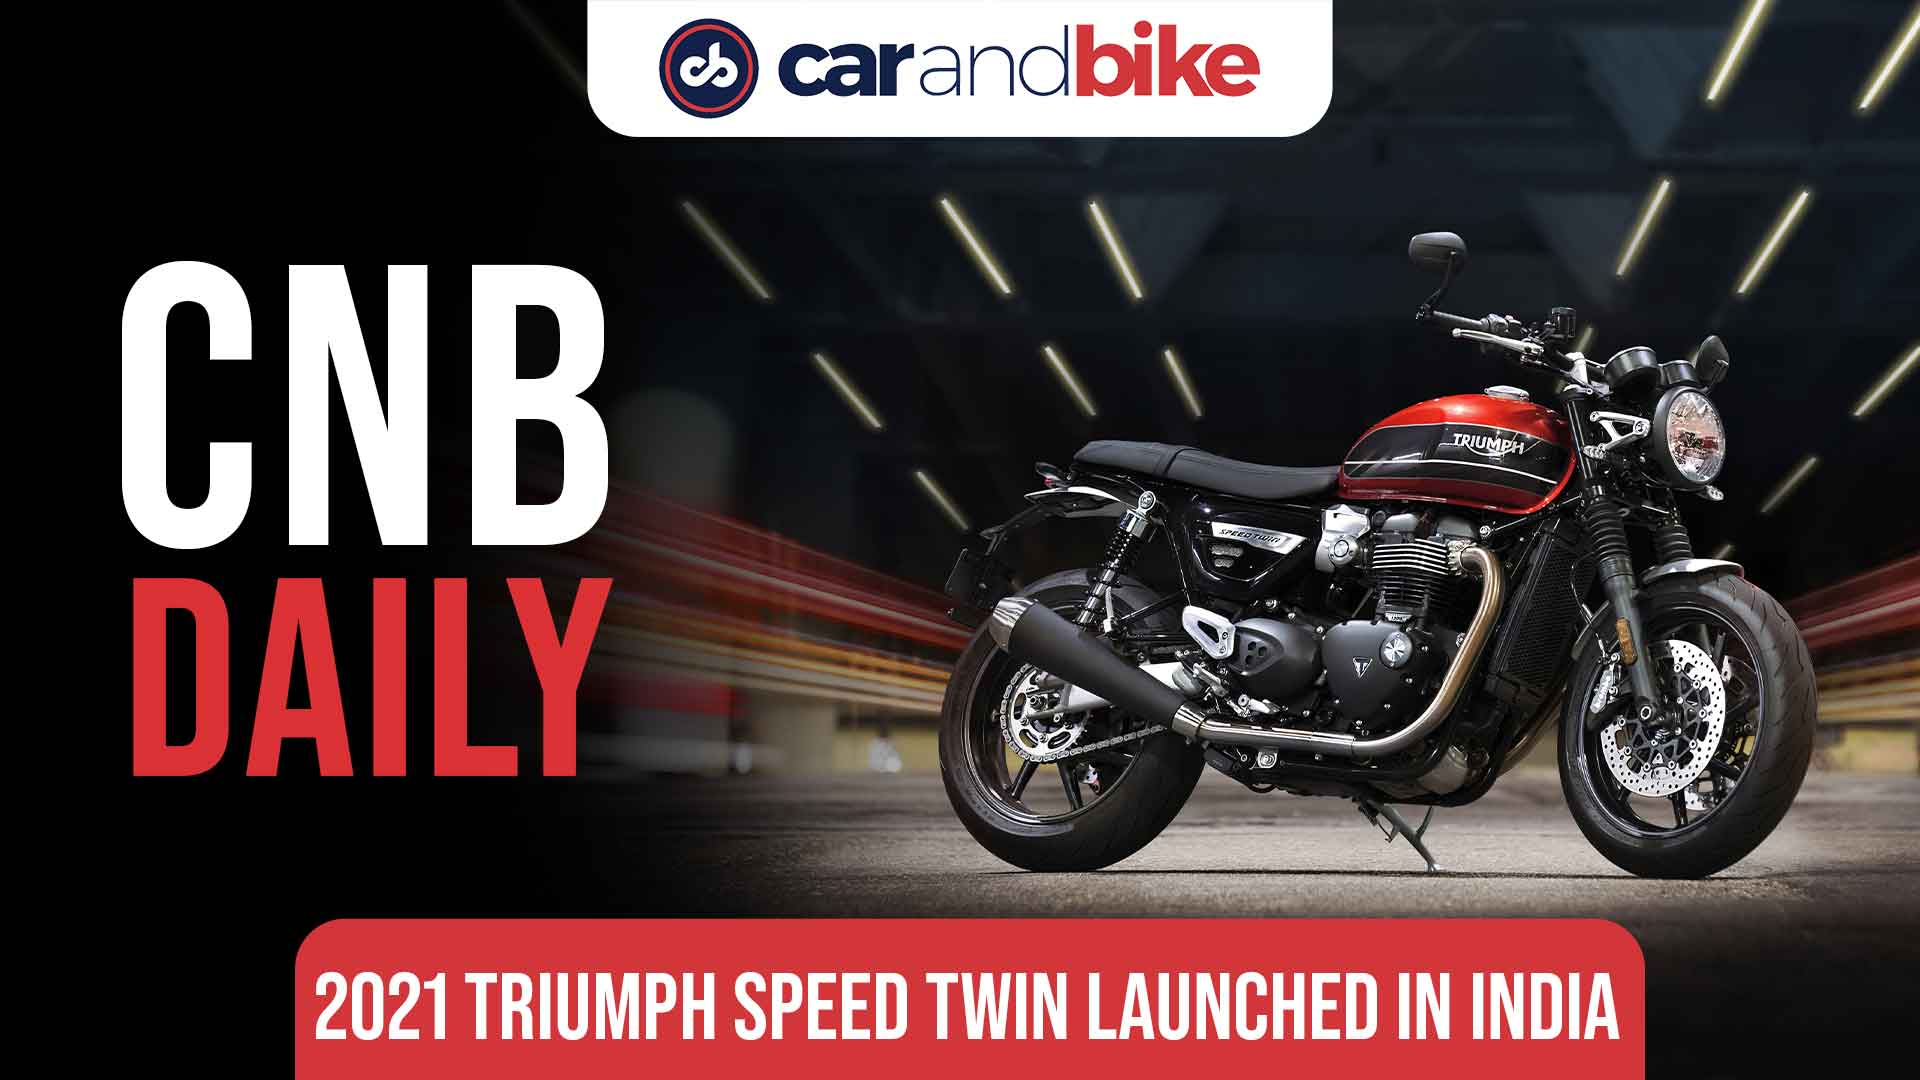 2021 Triumph Speed Twin launched in India; Priced at Rs. 10.99 lakh